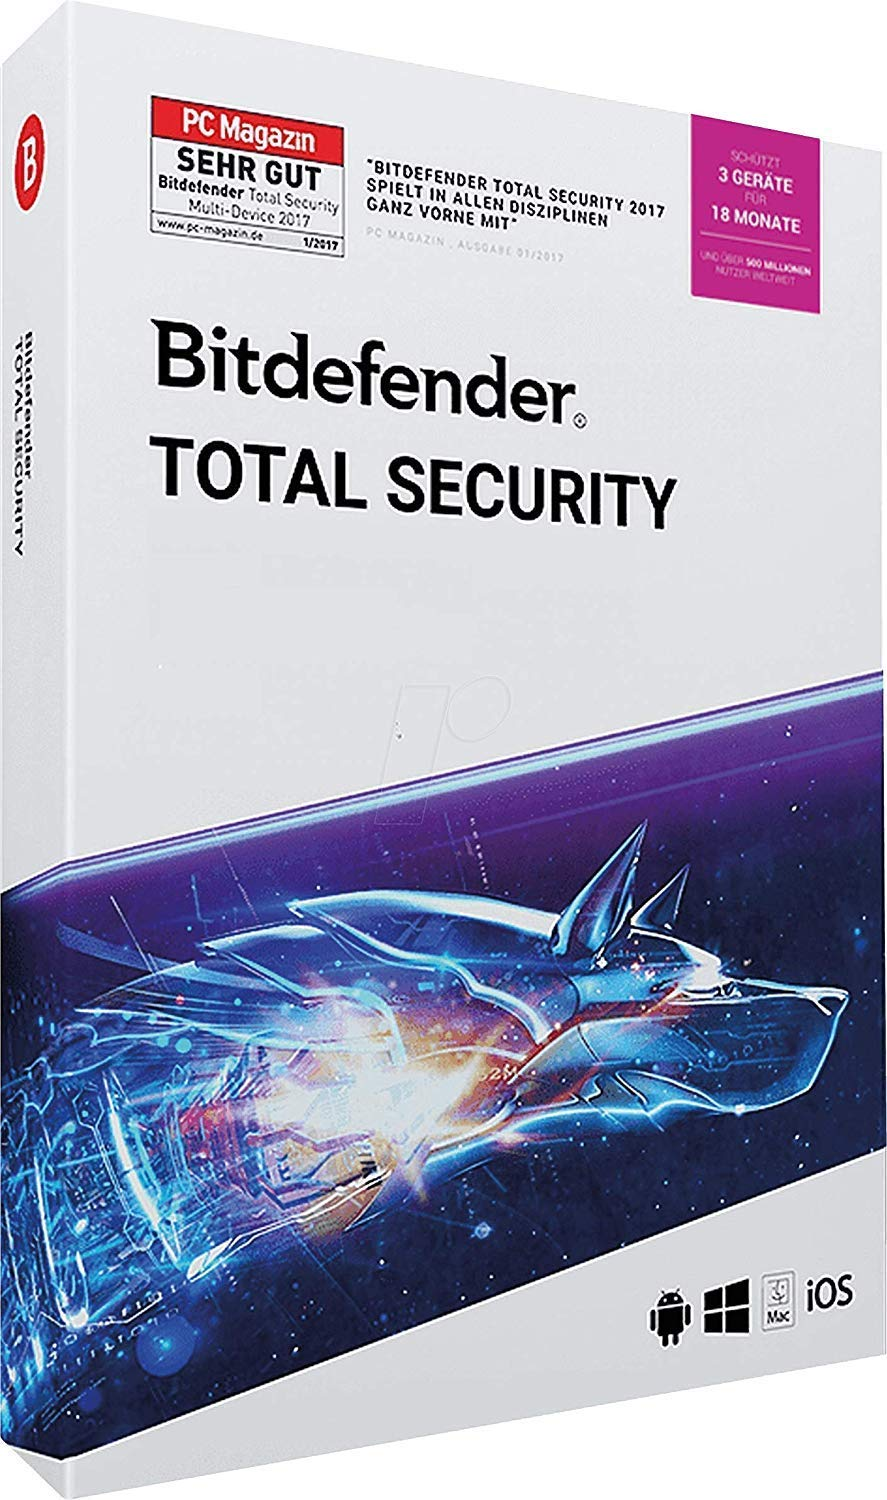 Bitdefender Total Security 2020 Crack + Activation Code Free {Updated}